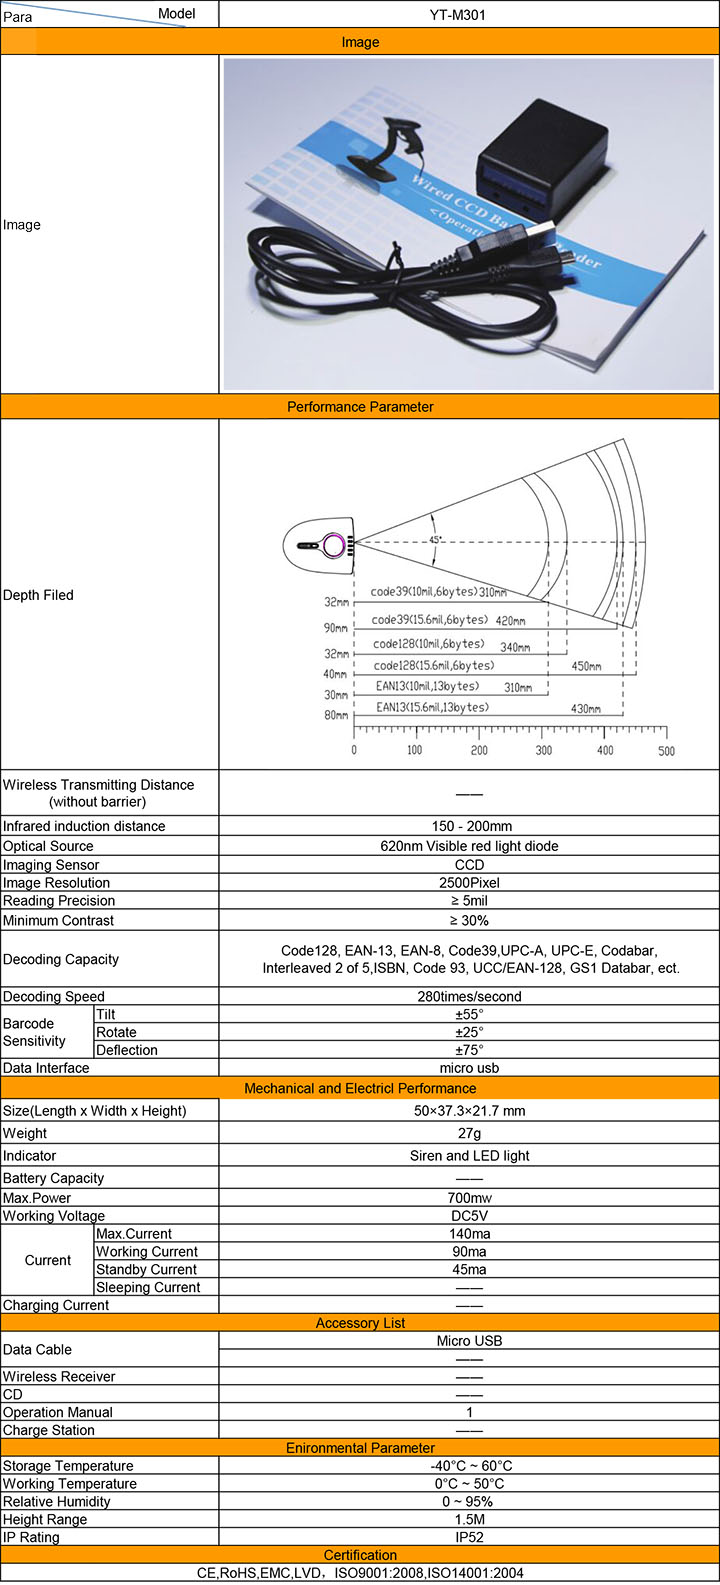 specification about YT-M301